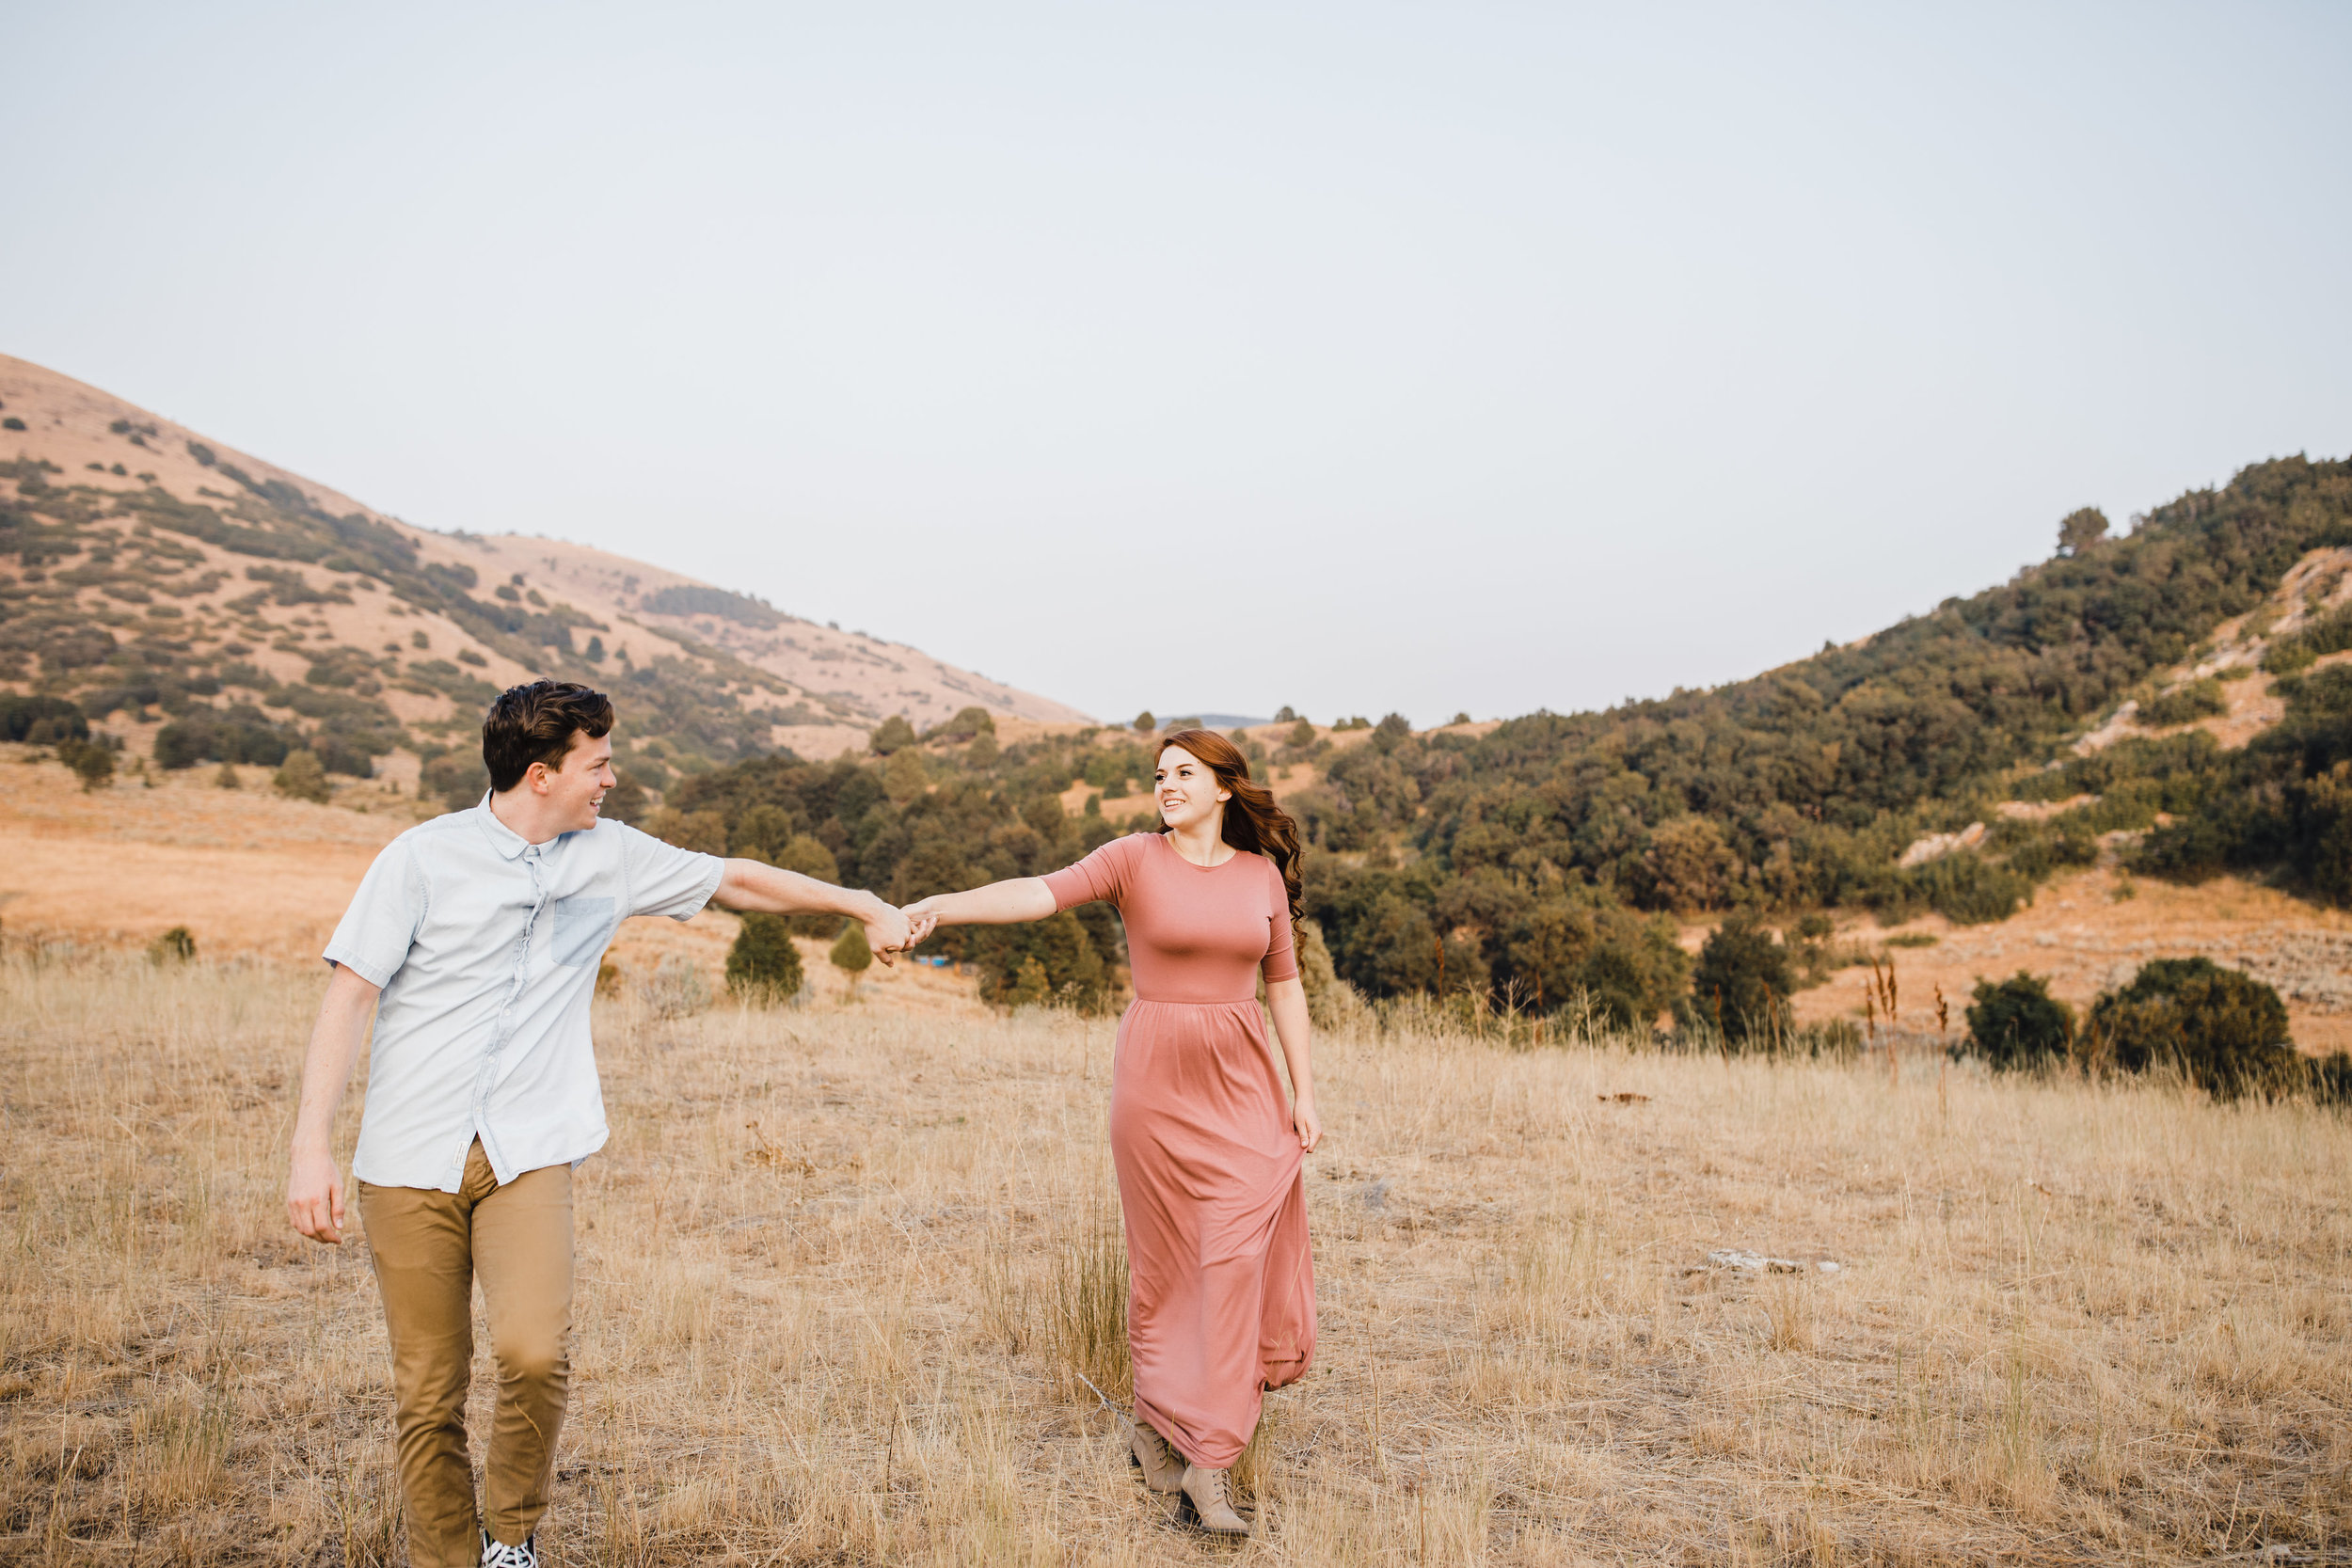 engagement photographer in sardine canyon utah holding hands walking mountain backdrop